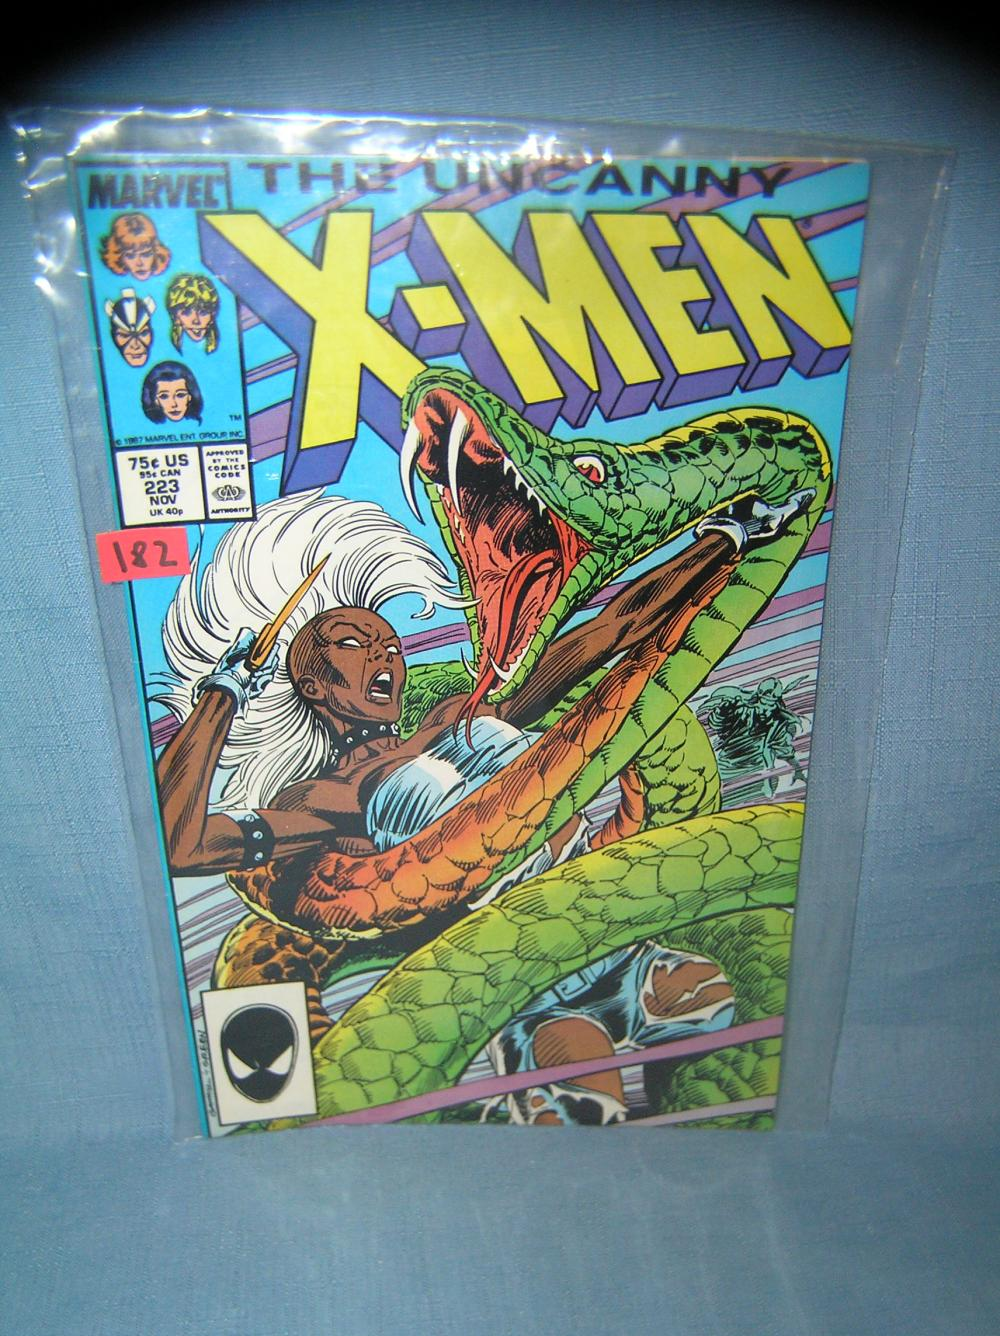 EARLY XMEN COMIC BOOK 1986